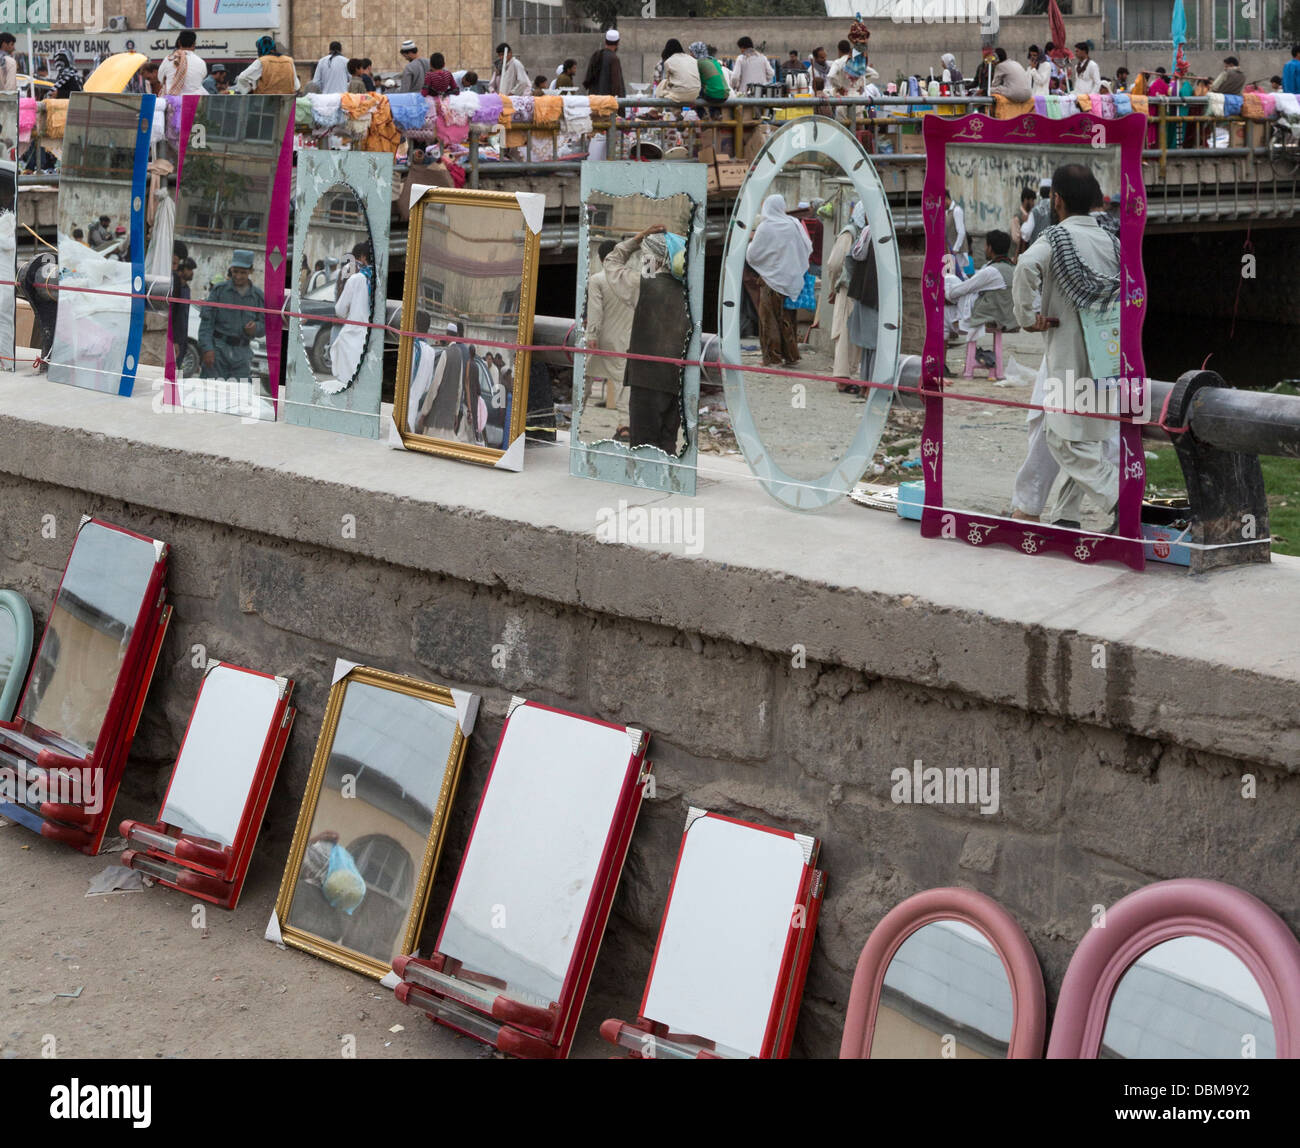 mirrors for sale, bazaar, Kabul, Afghanistan - Stock Image